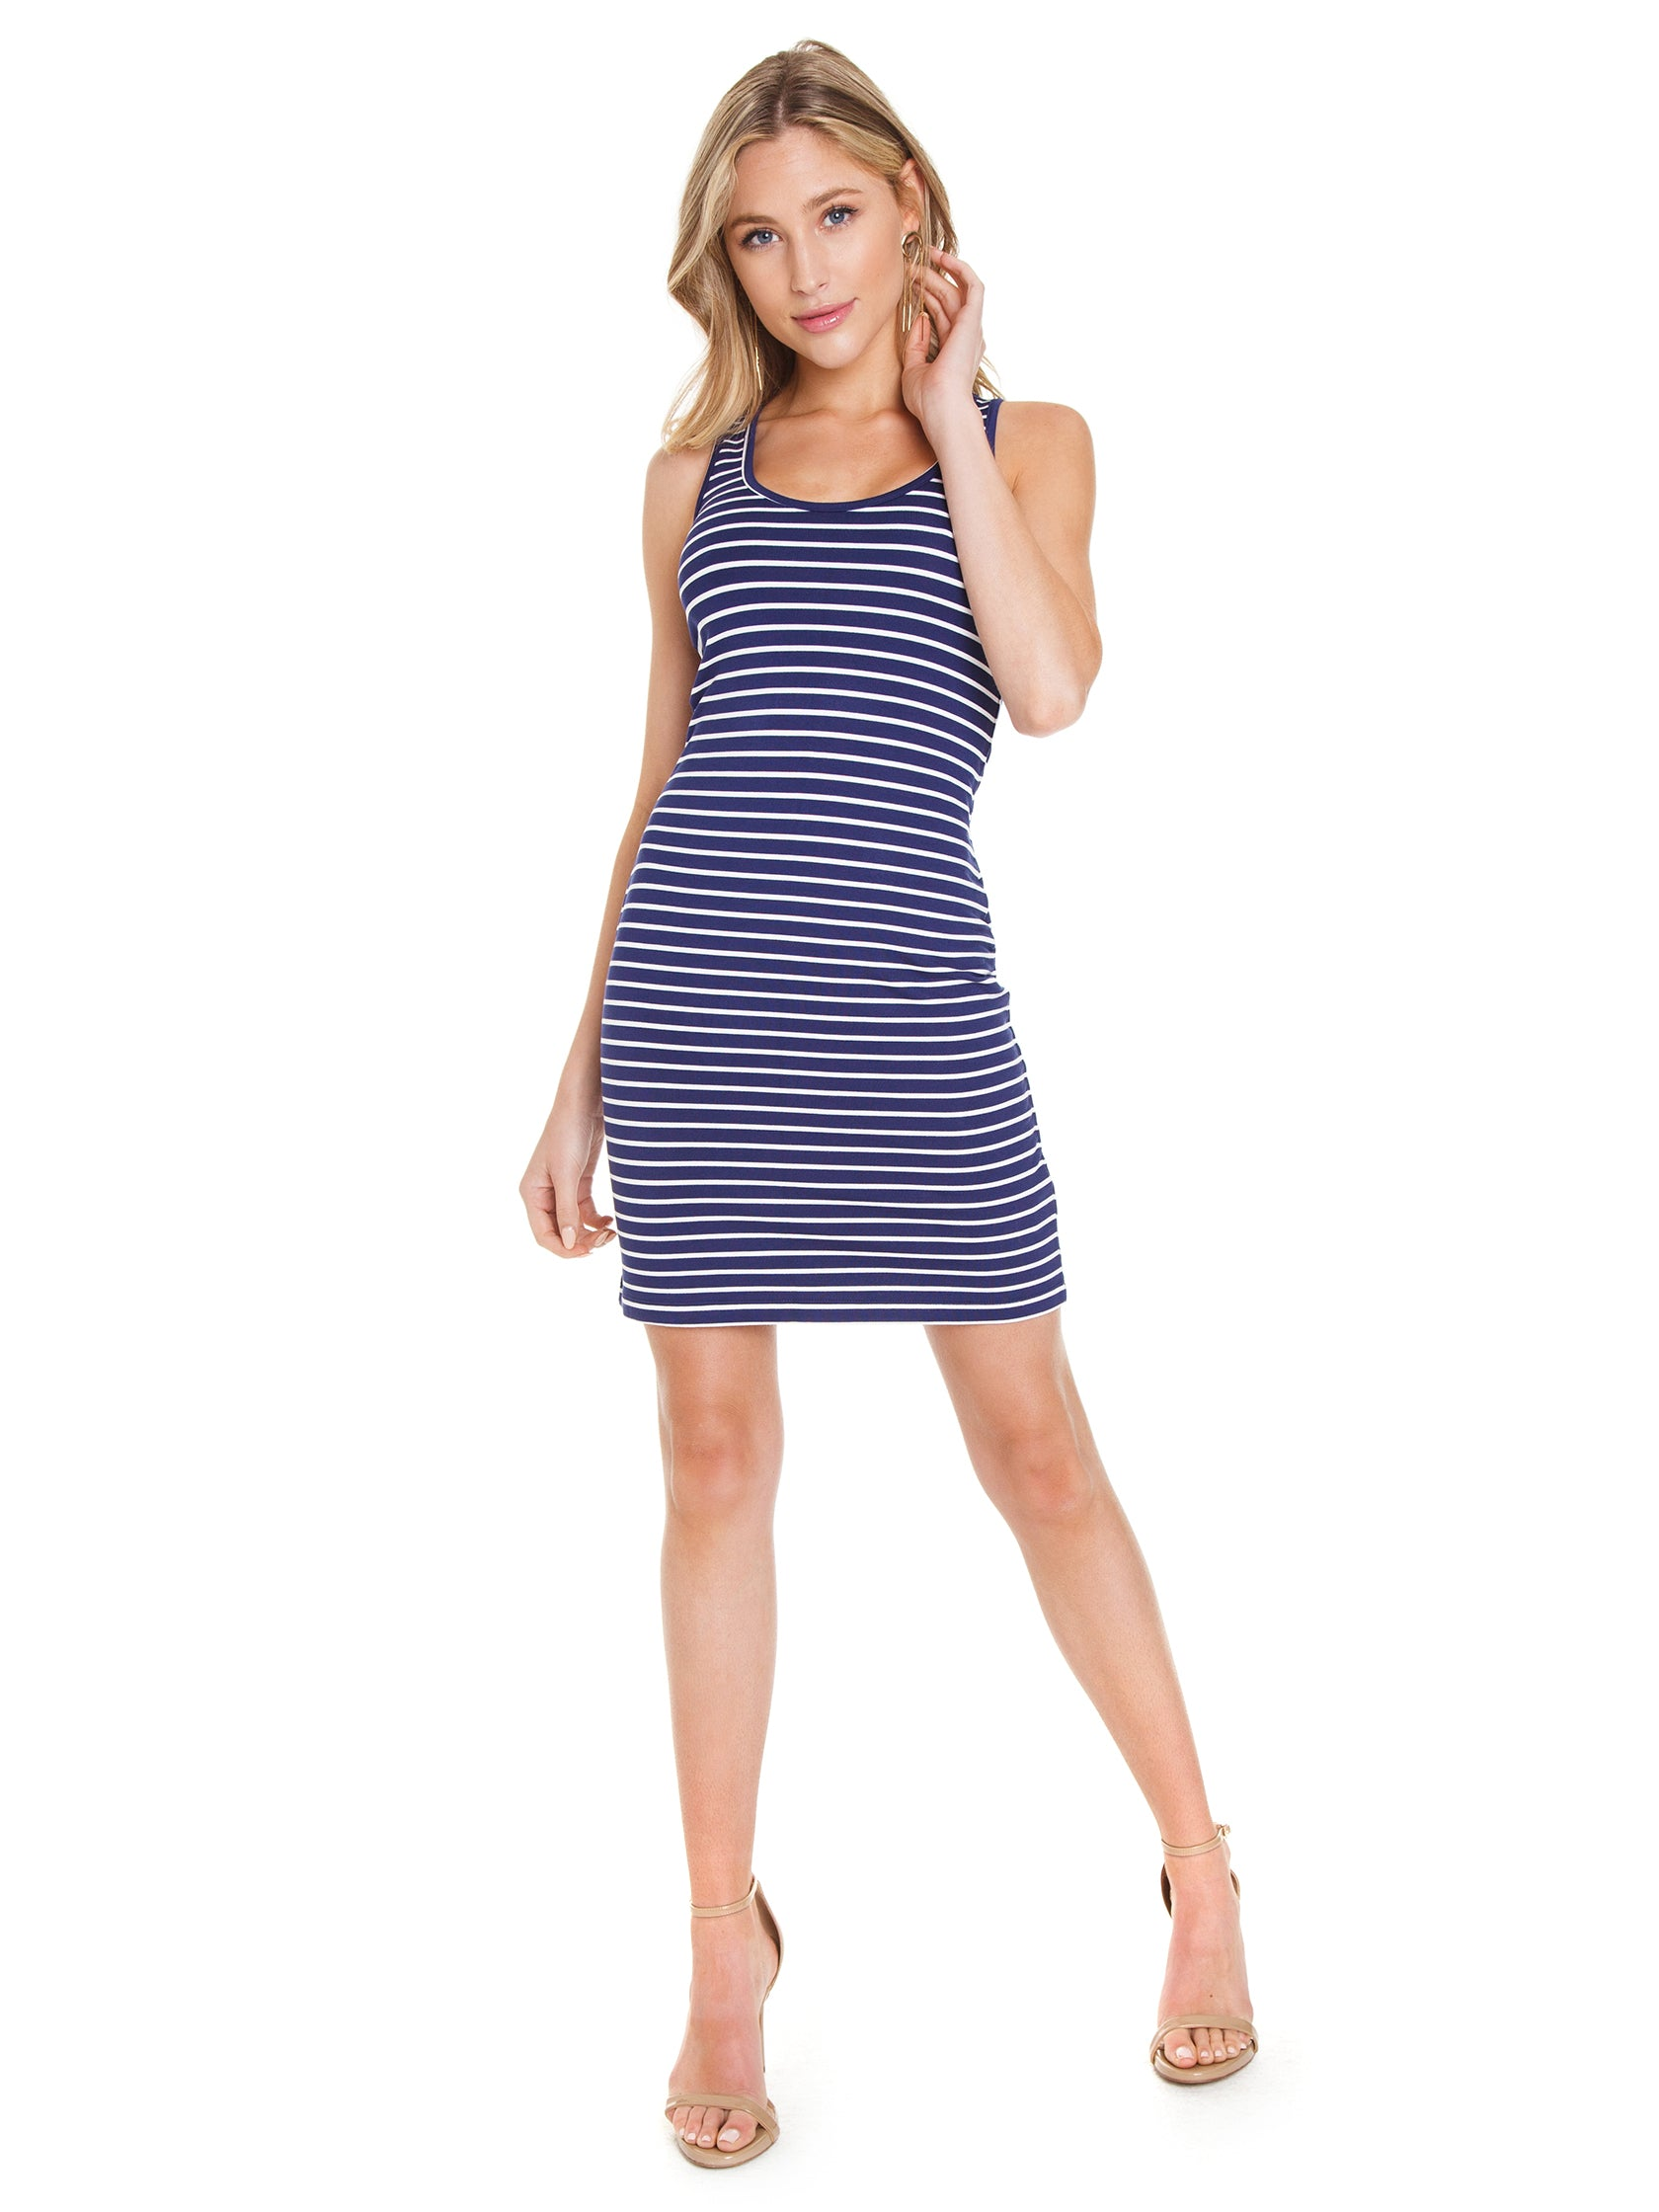 Girl outfit in a dress rental from BB Dakota called Summer Night City Striped Dress